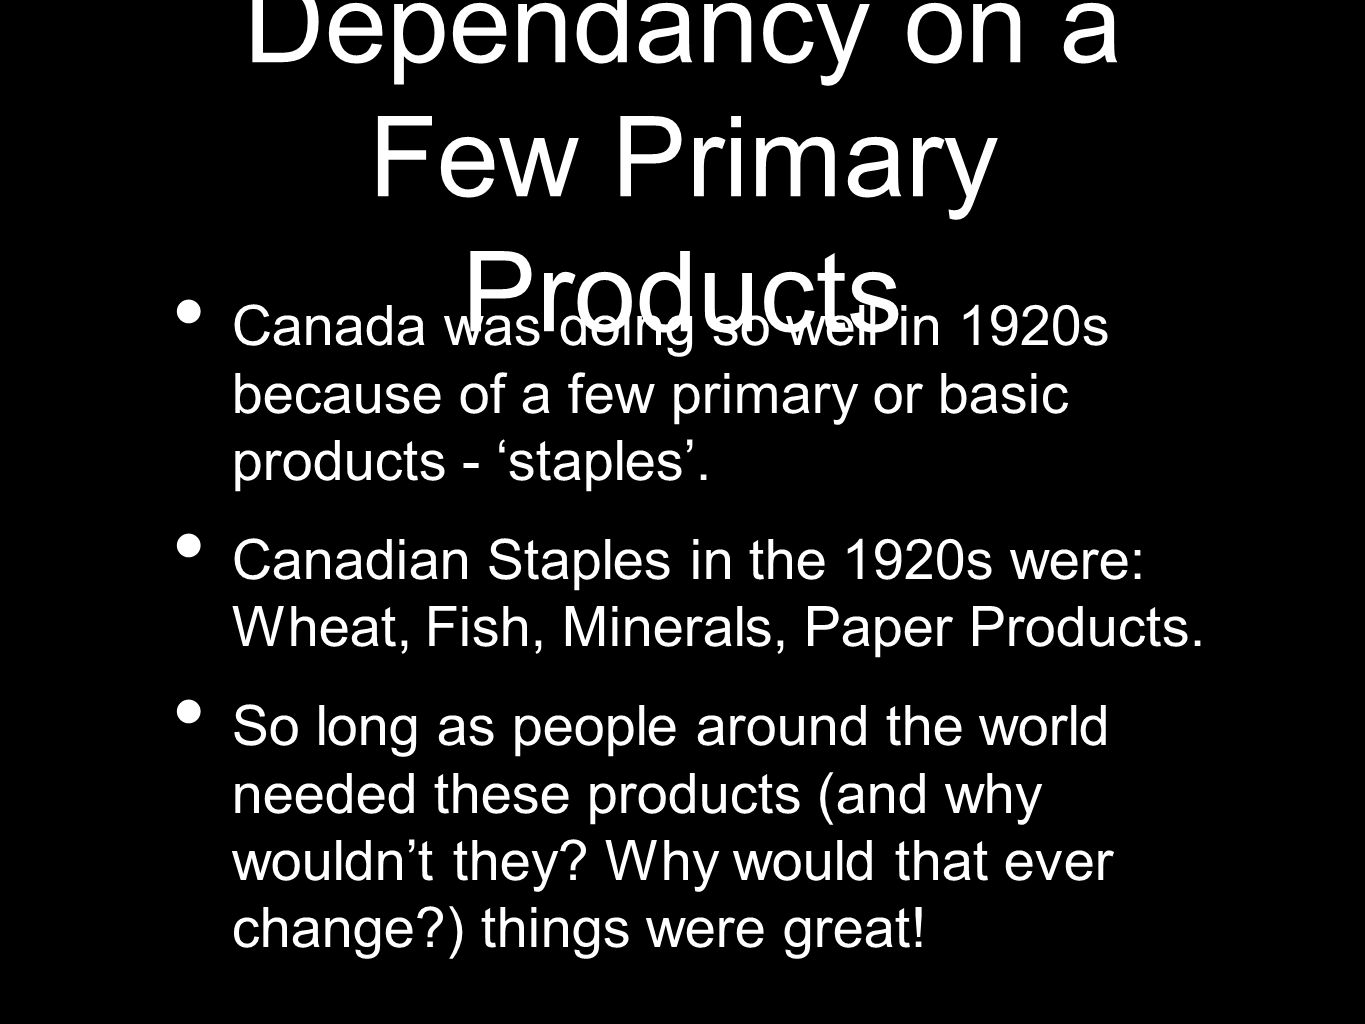 Dependancy on a Few Primary Products Canada was doing so well in 1920s because of a few primary or basic products - staples.